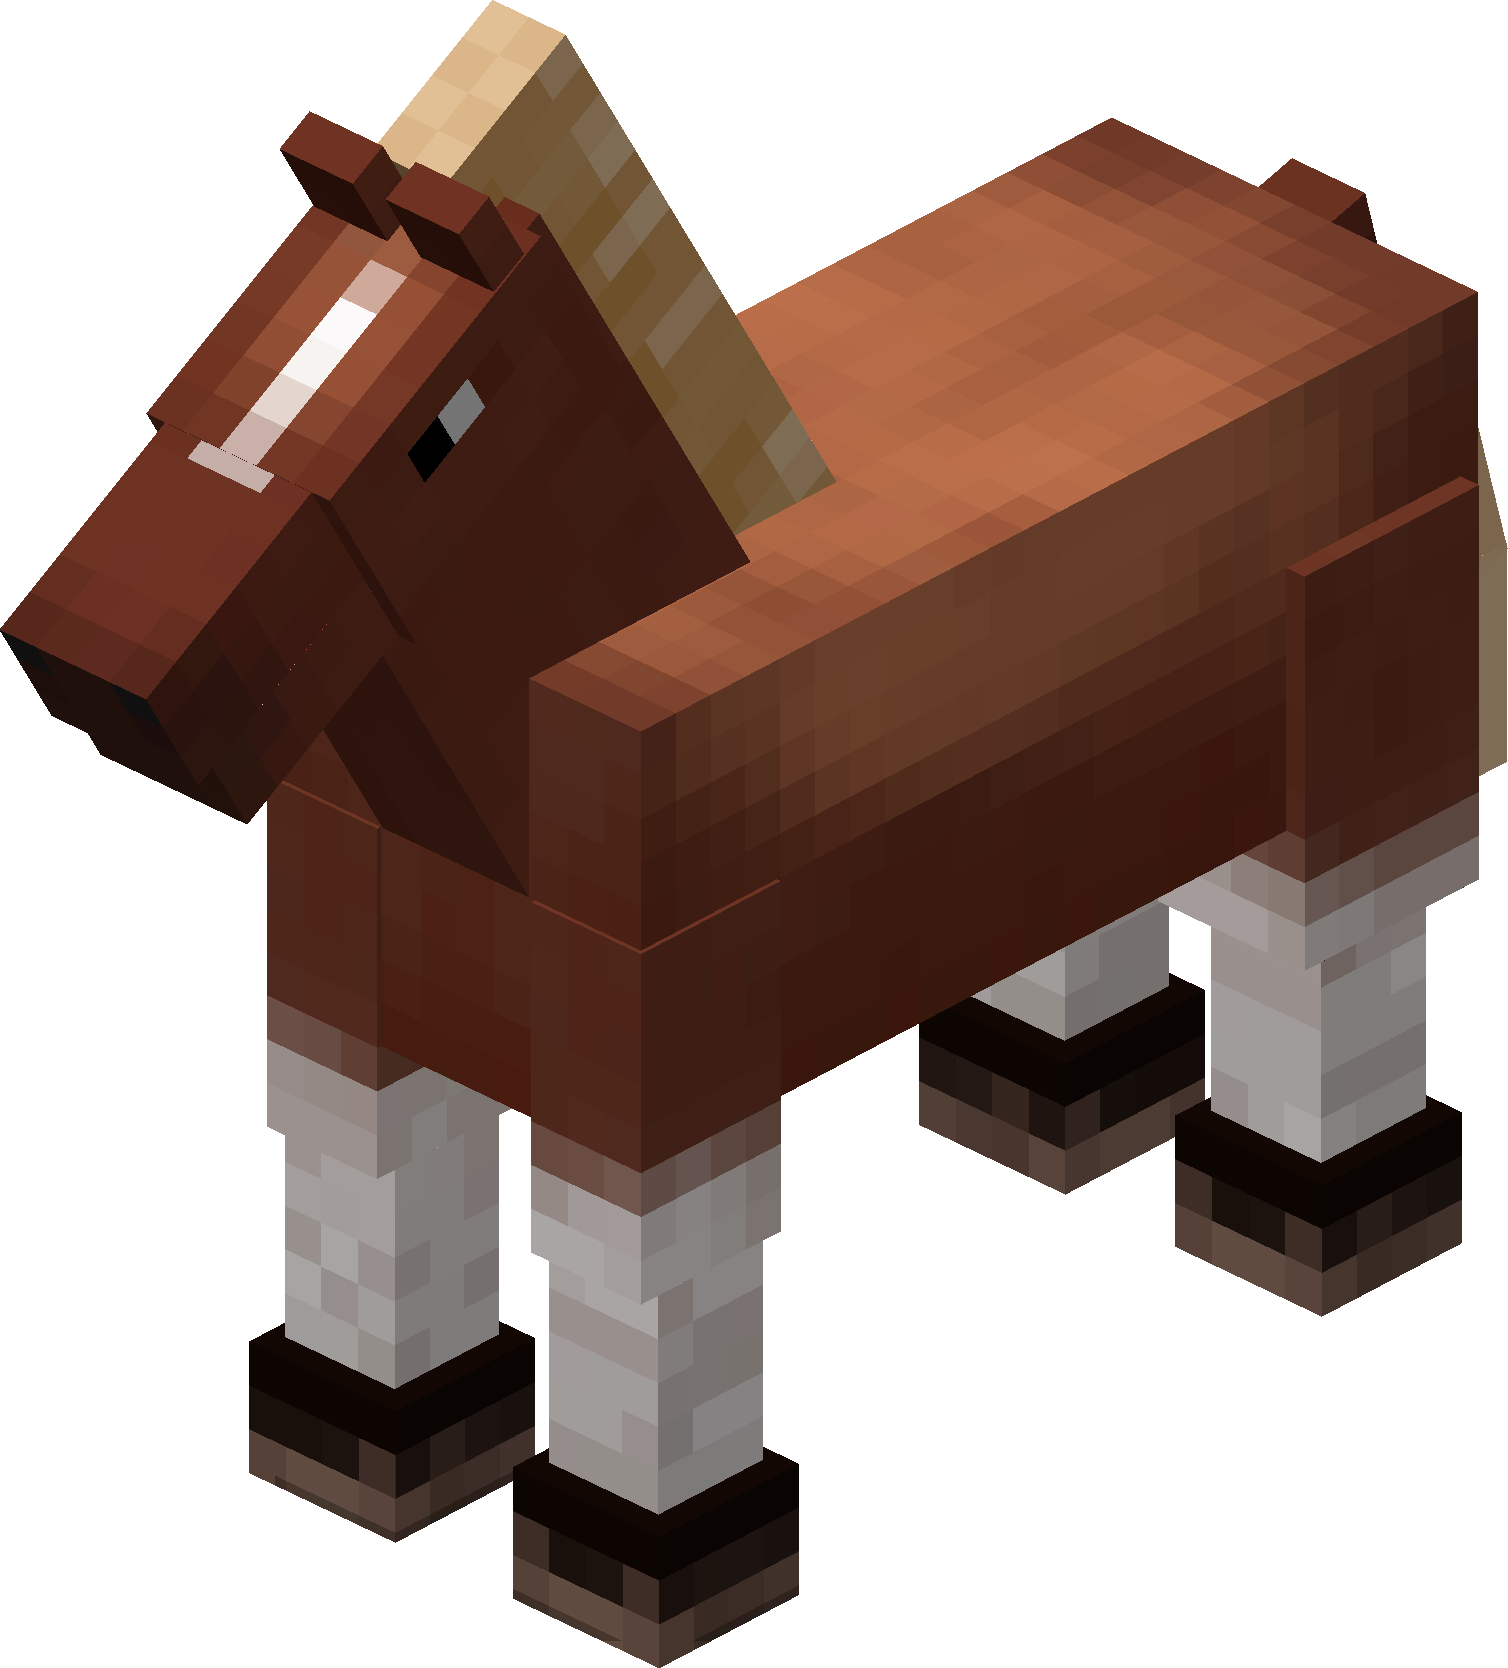 Horse The Lord Of The Rings Minecraft Mod Wiki Fandom Powered By